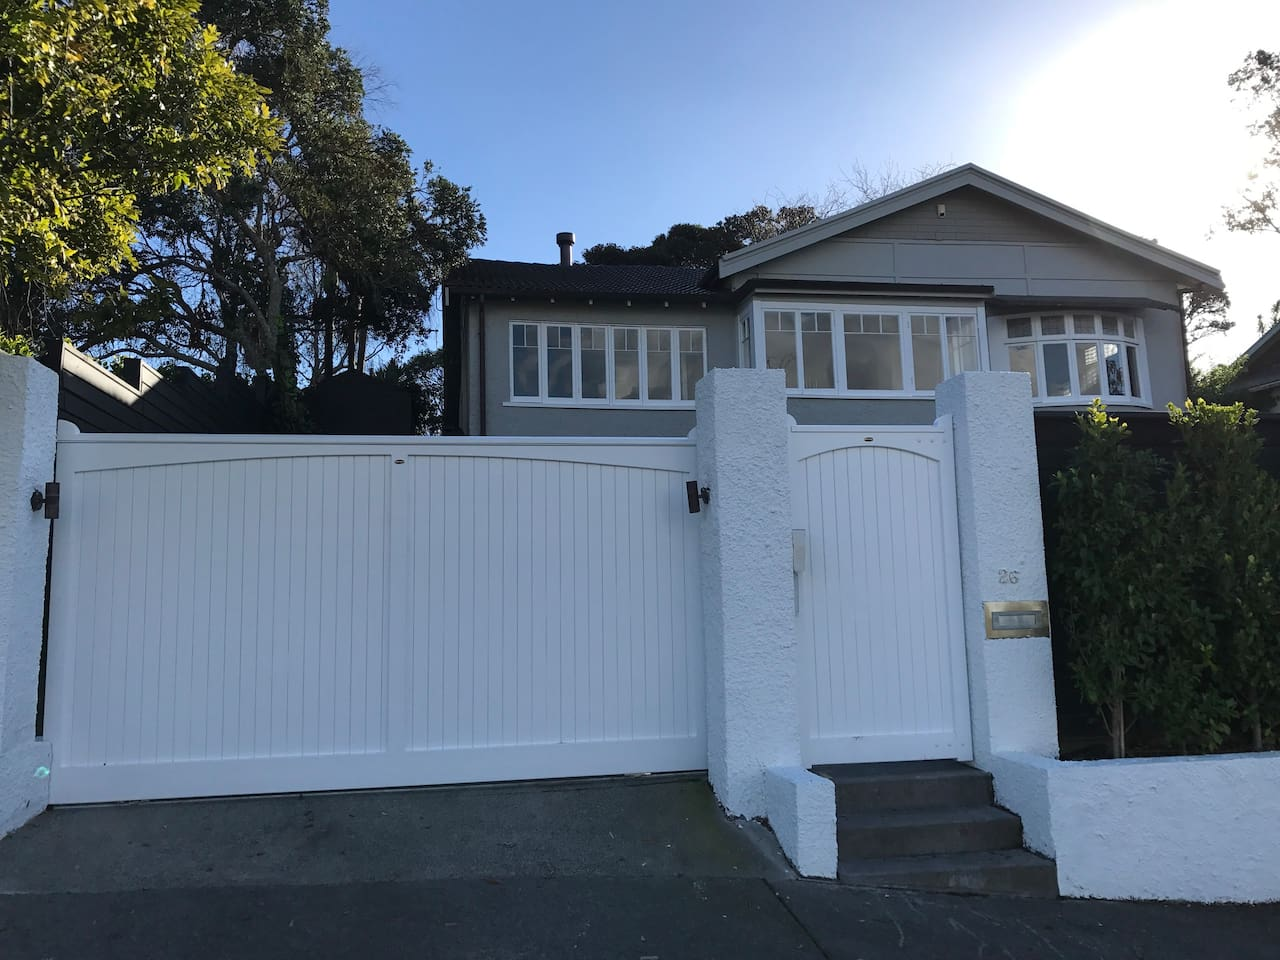 Fully fenced with automatic driveway gates, intercom and pin pad access on pedestrian gates for your security.